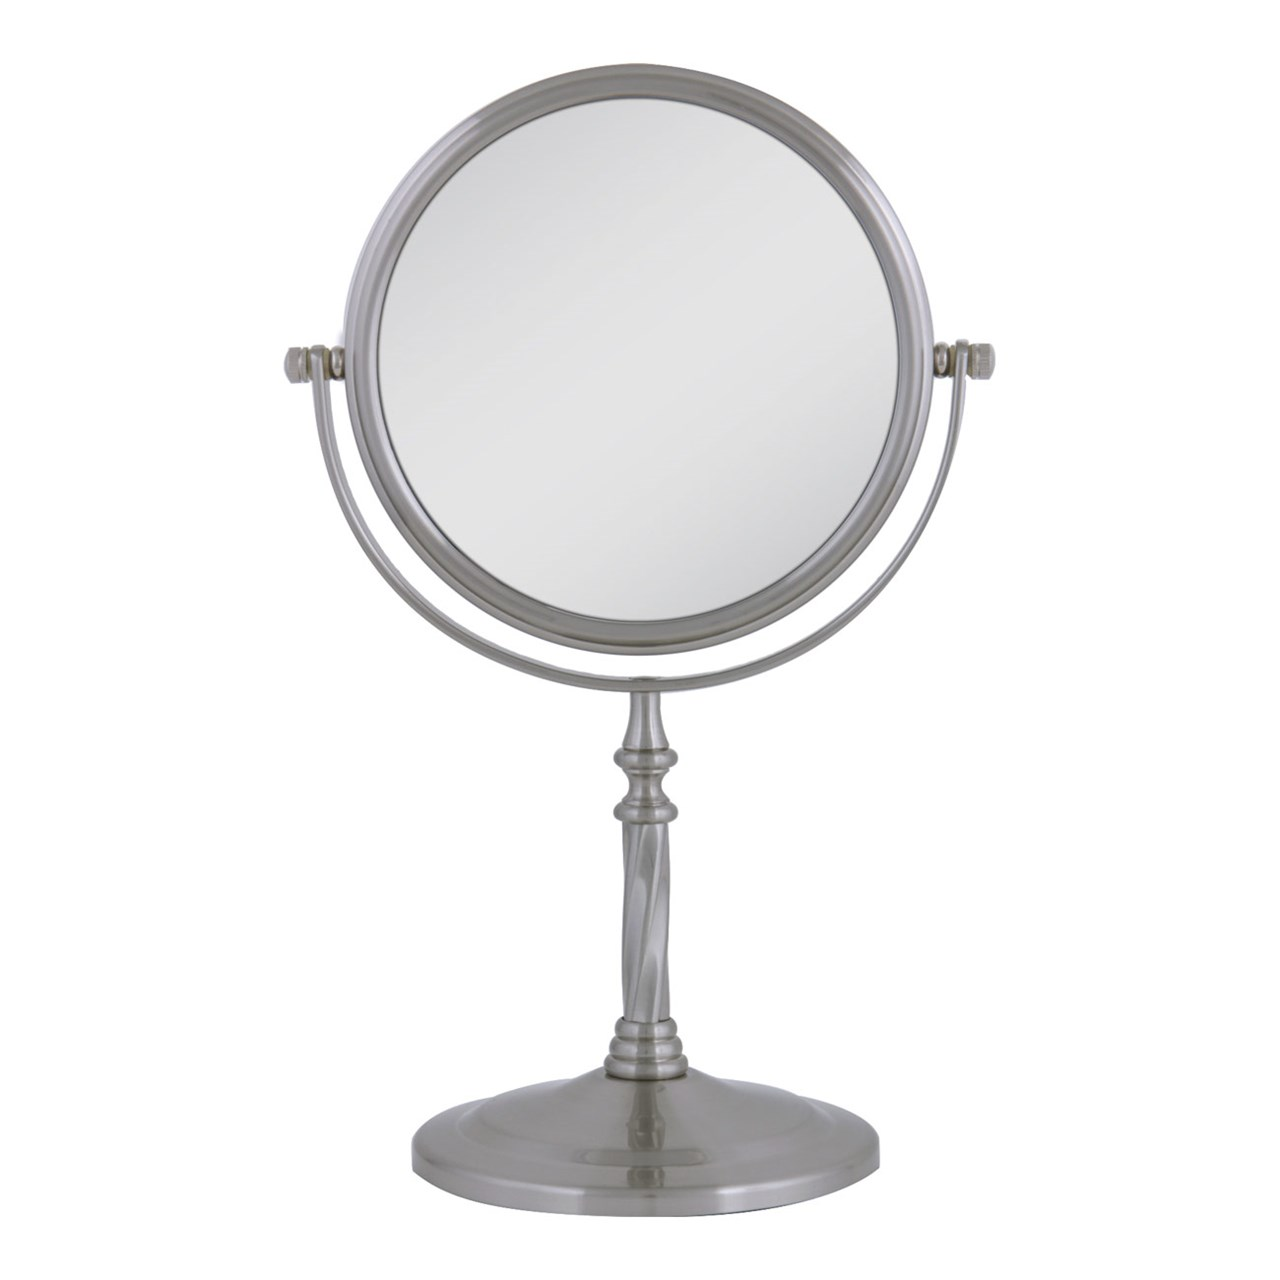 satin nickel mirror maxiaids swivel vanity mirror pedestal satin nickel 5x 1x 2104